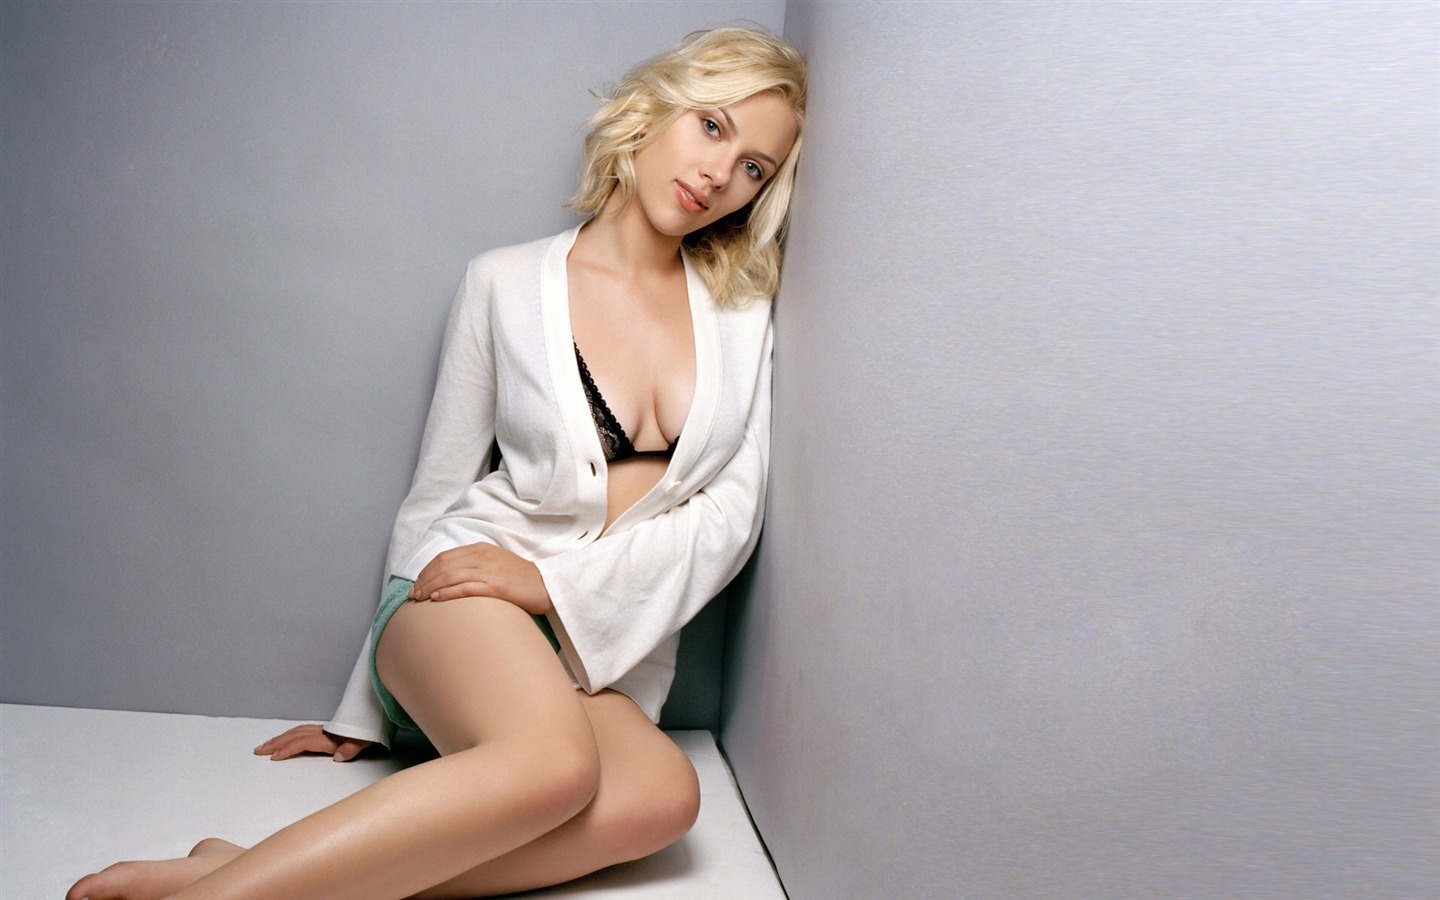 People / Scarlett Johansson beautiful sexy photo wallpa.. Scarlett_Johansson_beautiful_sexy_photo_wallpaper_112013.1.14